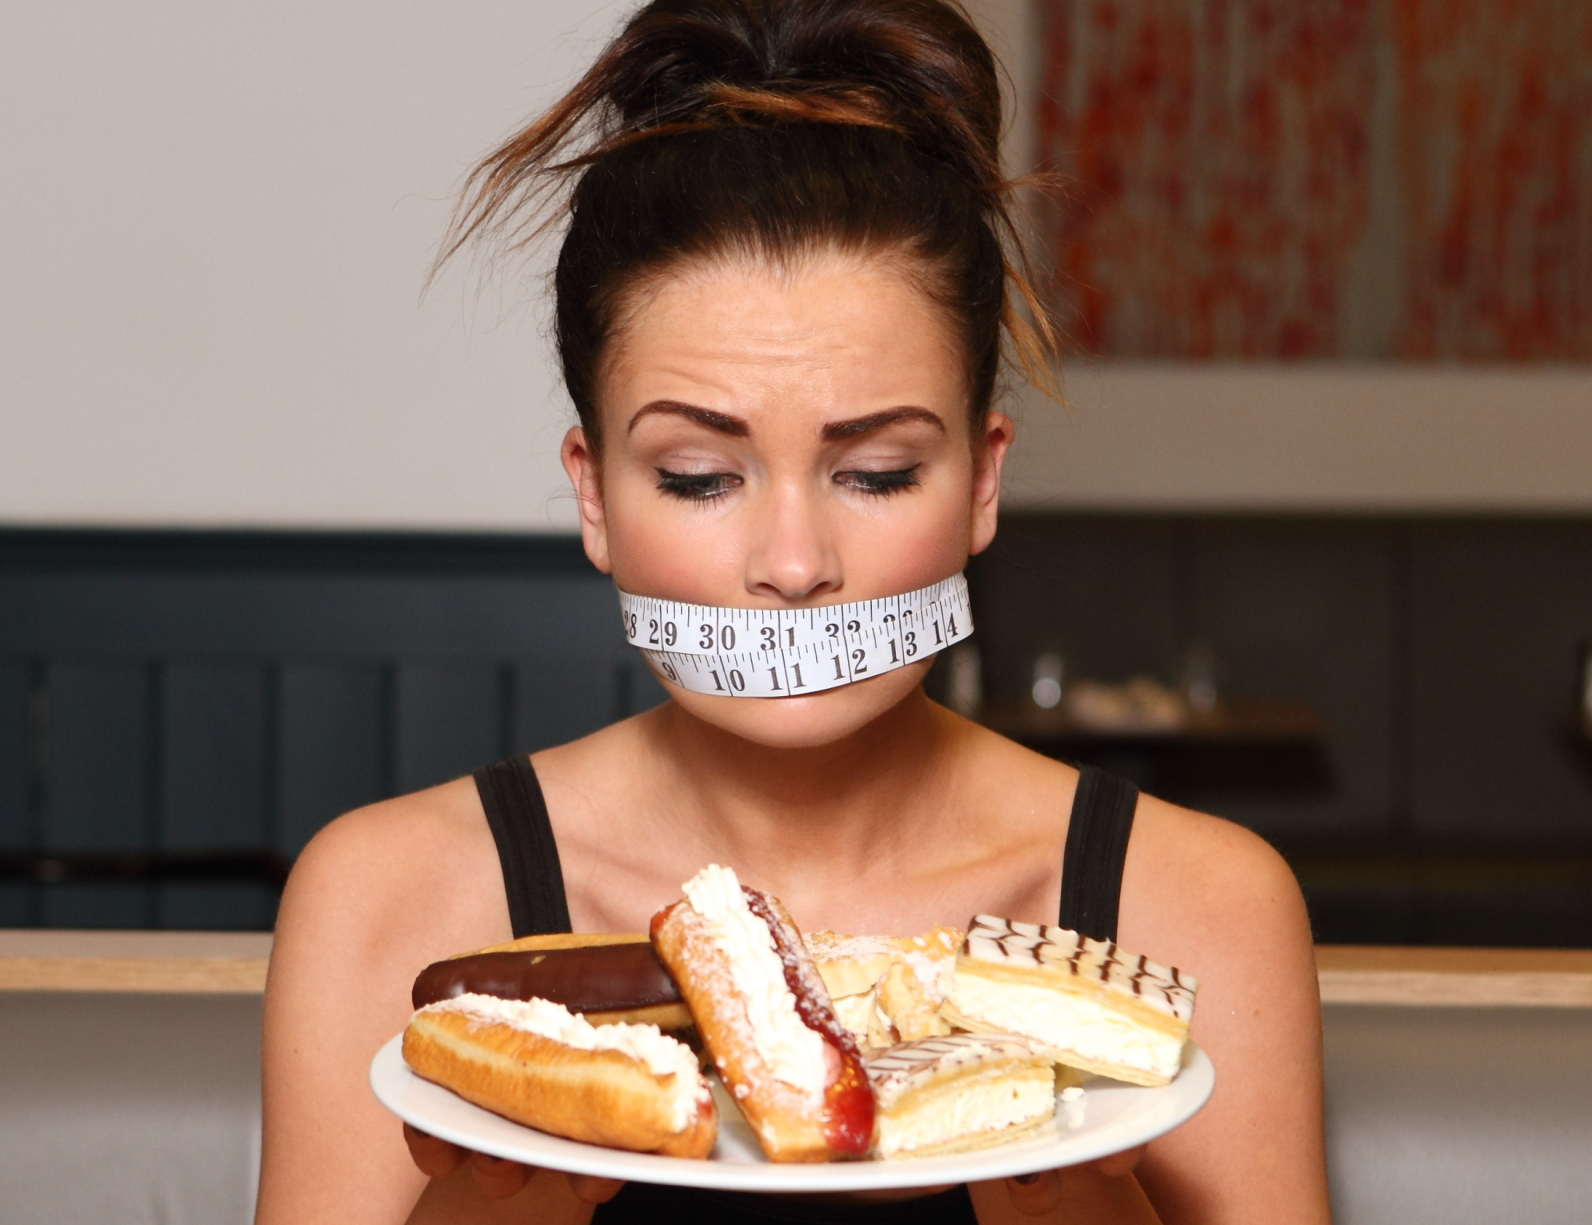 Eating Disorders, Binge Eating, Obesity and Weight Management